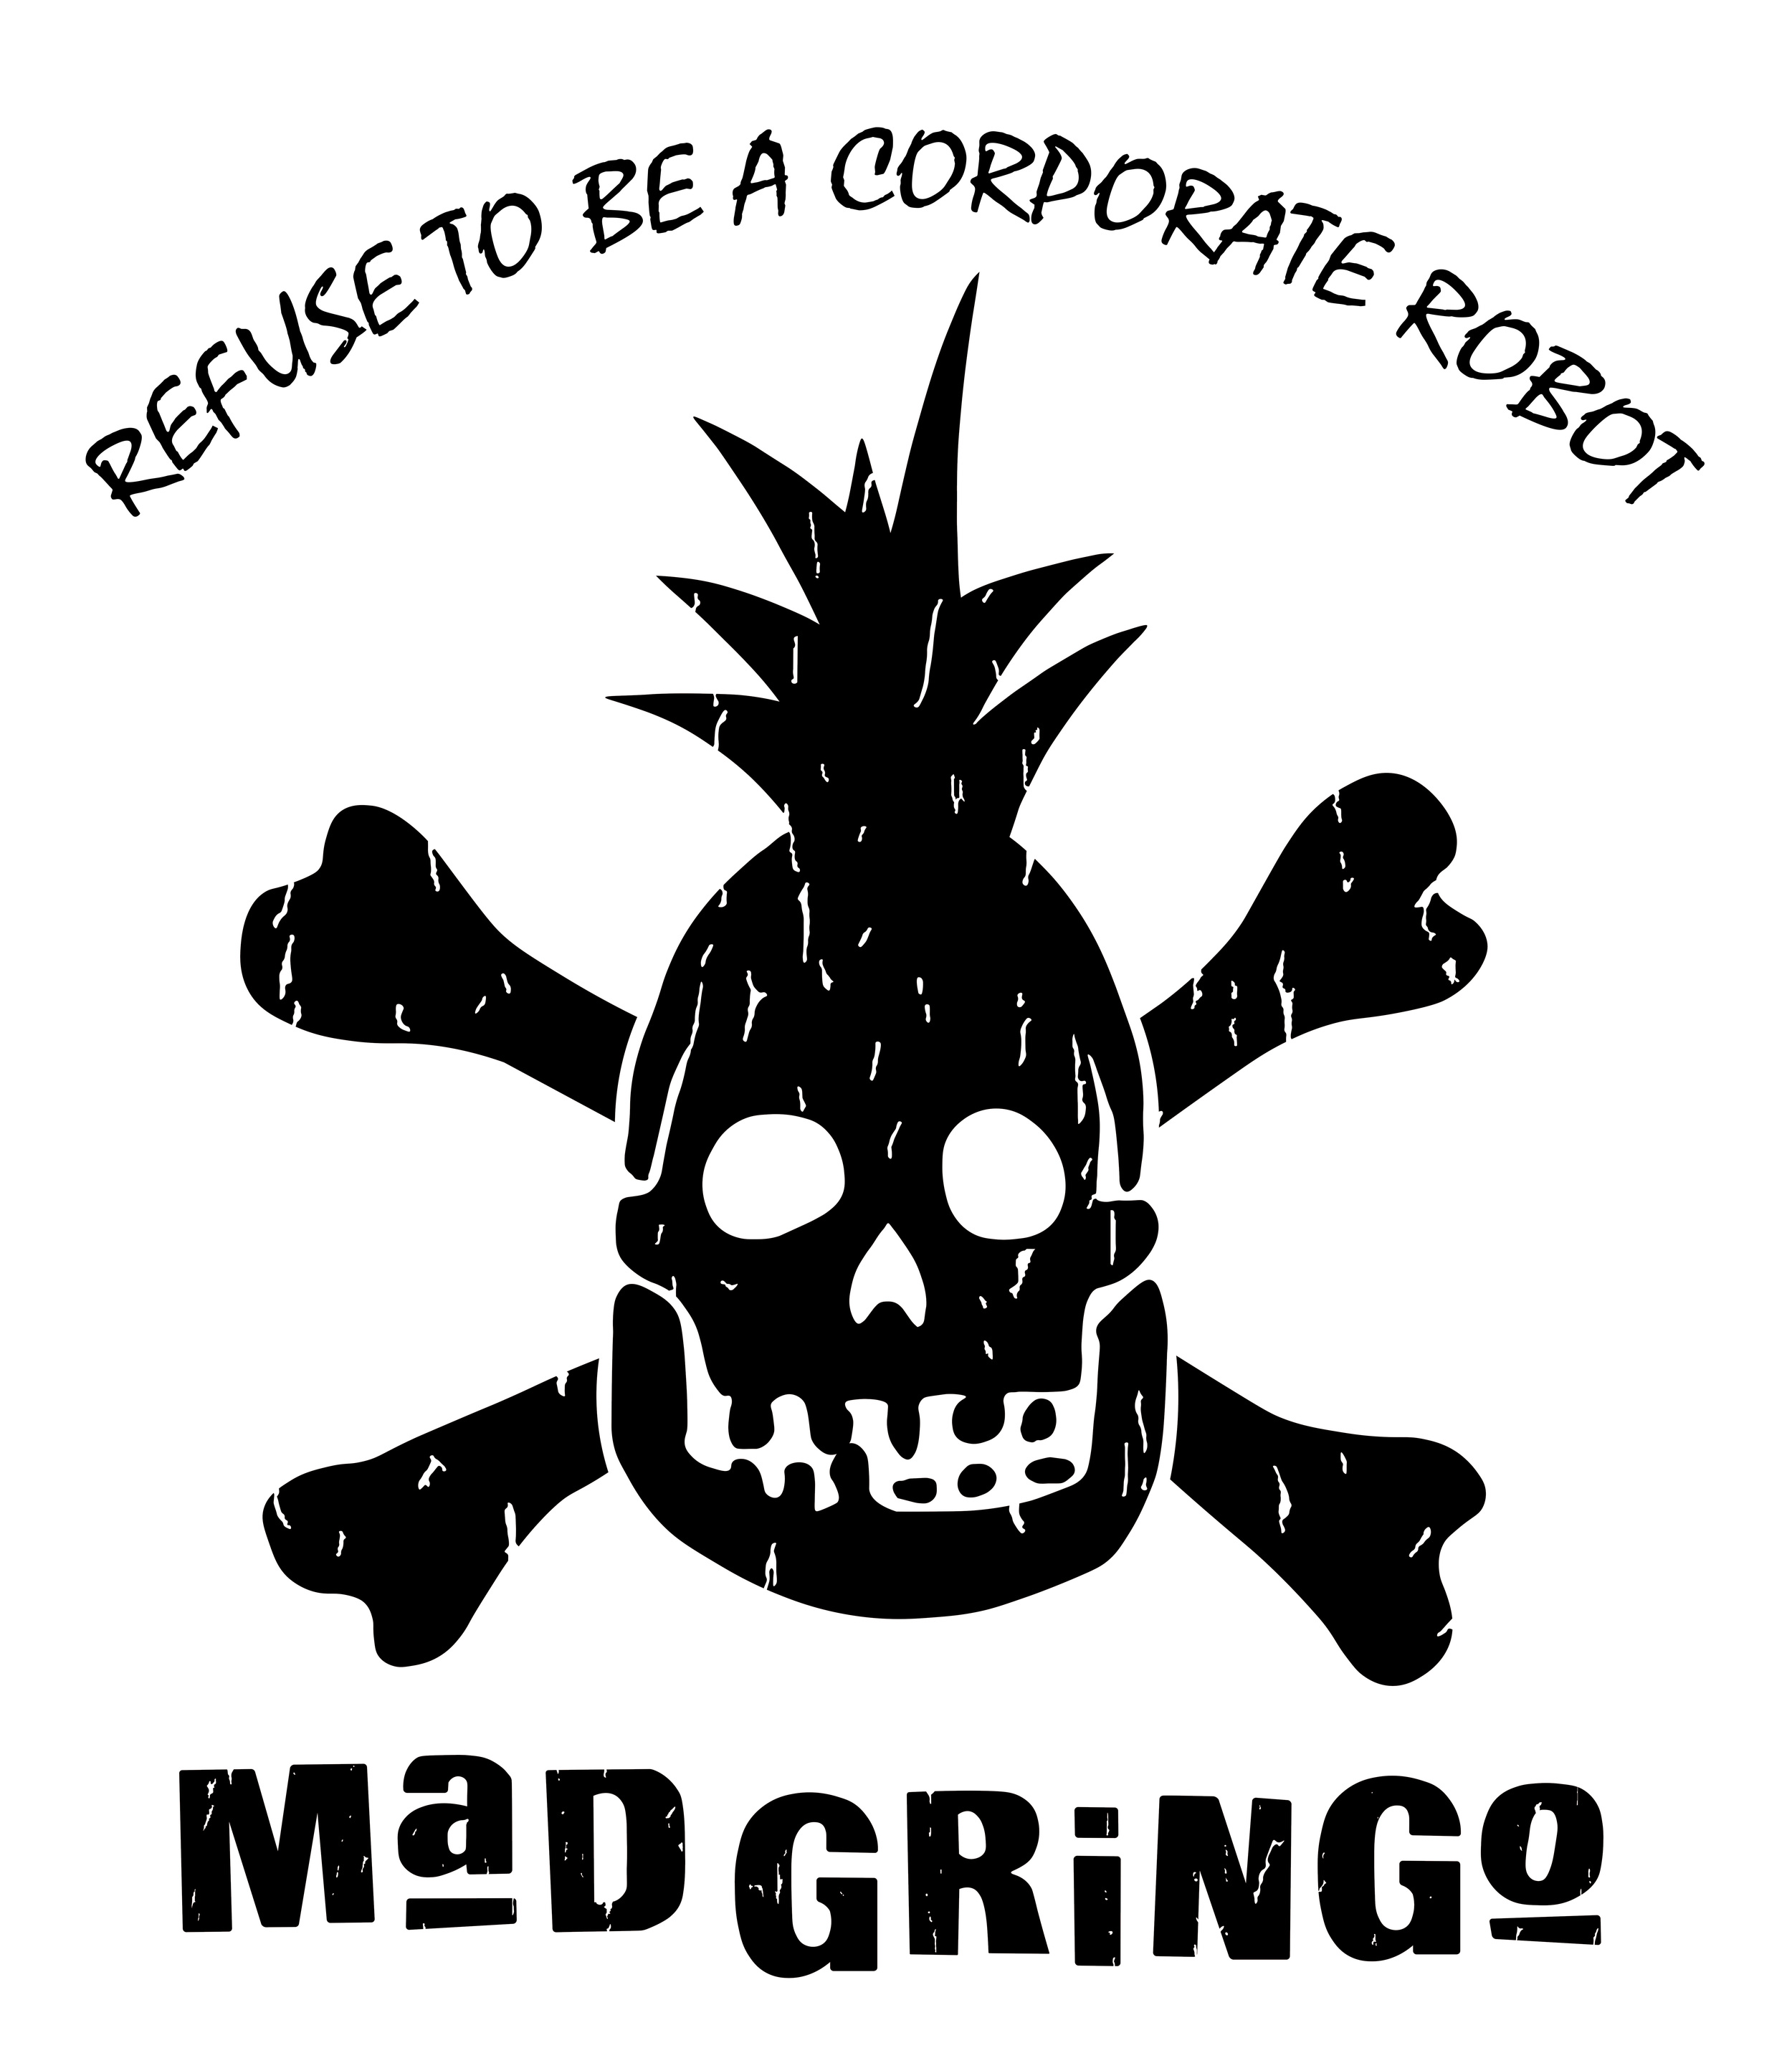 click the Image to see some cool,anti-corporate clothing.